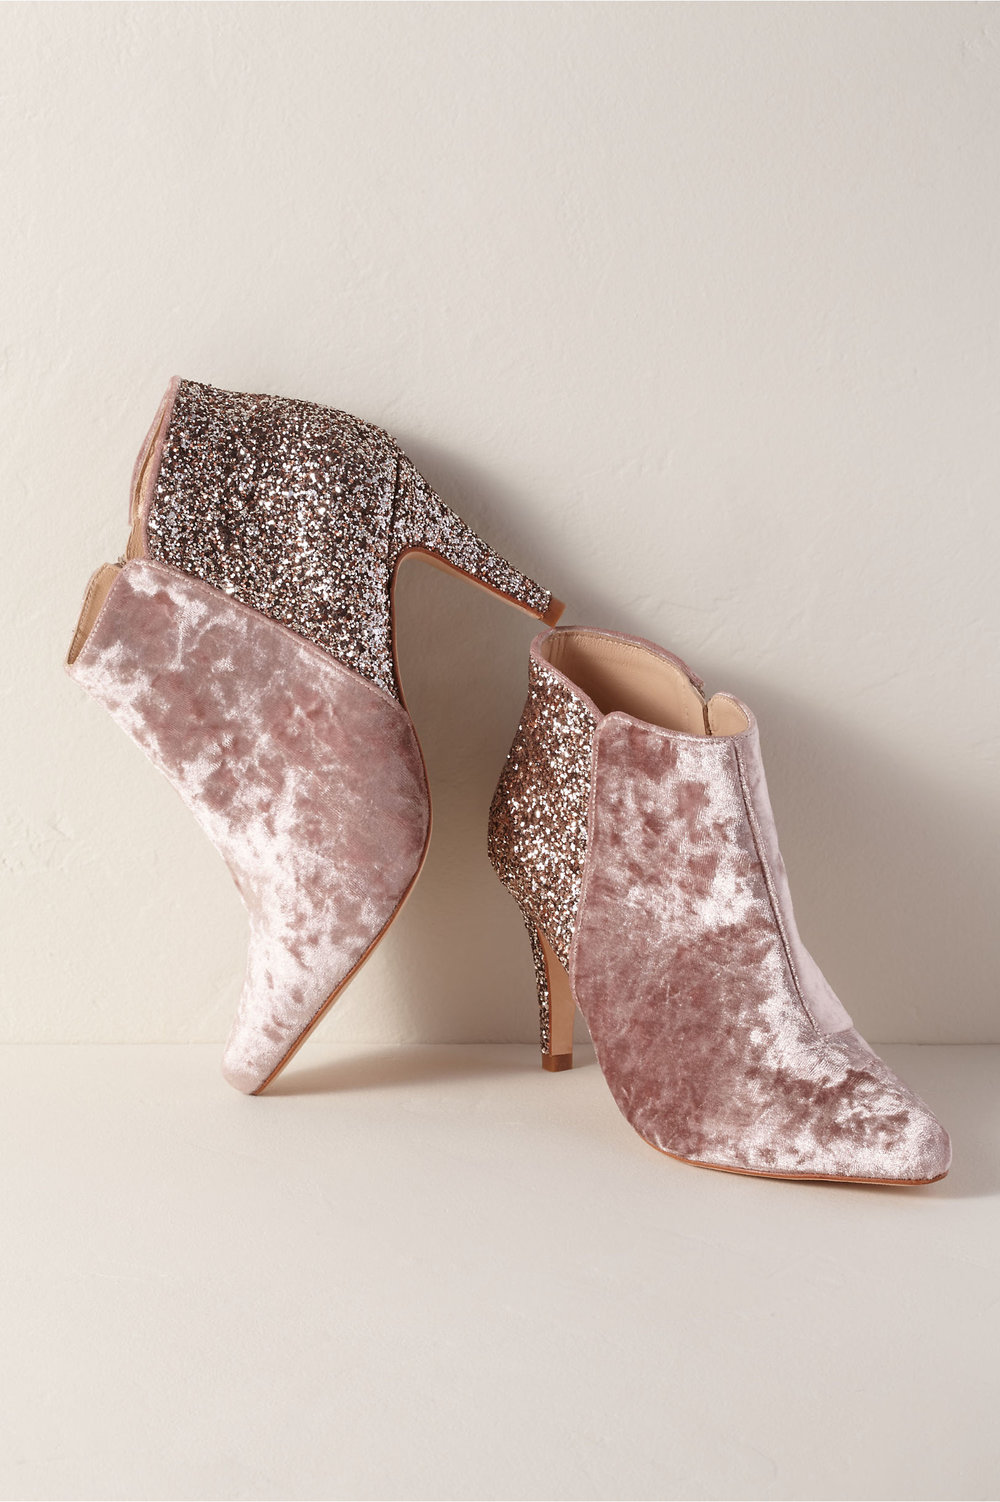 pink velvet and glitter high heel booties 2019 spring bhldn wedding collection